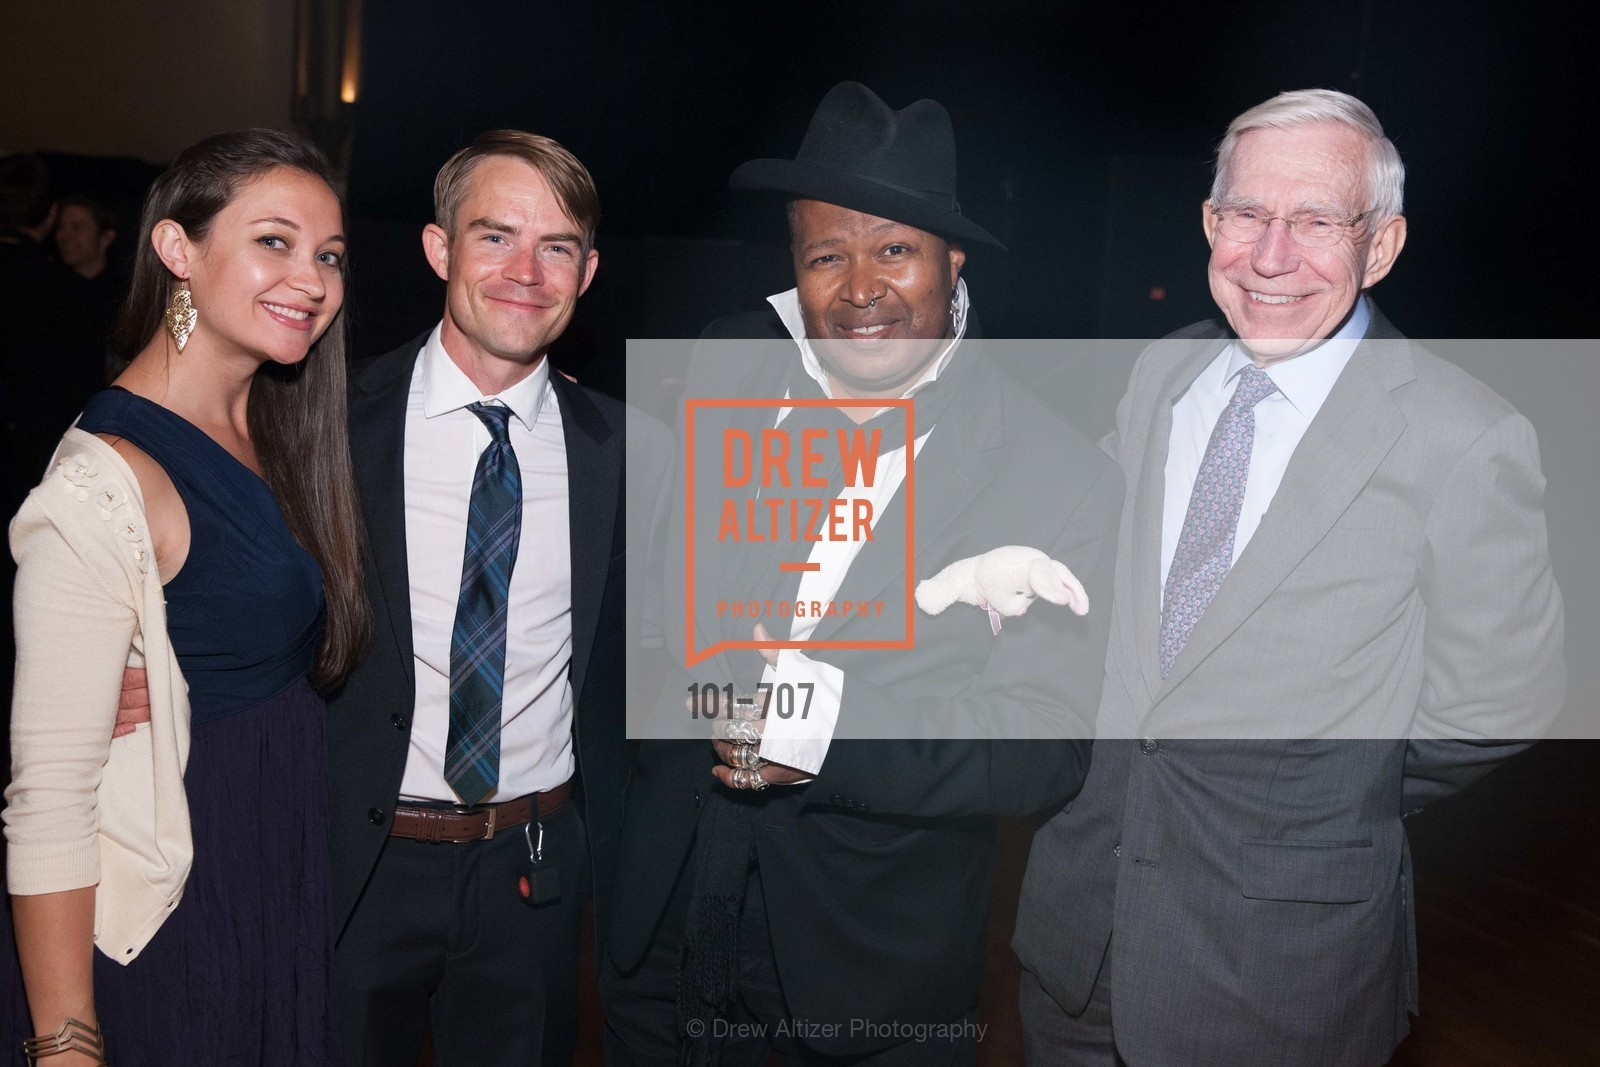 Arlyle Schultz, Paul Schultz, Reginald Ray Savage, Ambassador Frank Baxter, OAKLAND SCHOOL FOR THE ARTS Gala 2015 with Governor Jerry Brown, US, May 7th, 2015,Drew Altizer, Drew Altizer Photography, full-service agency, private events, San Francisco photographer, photographer california